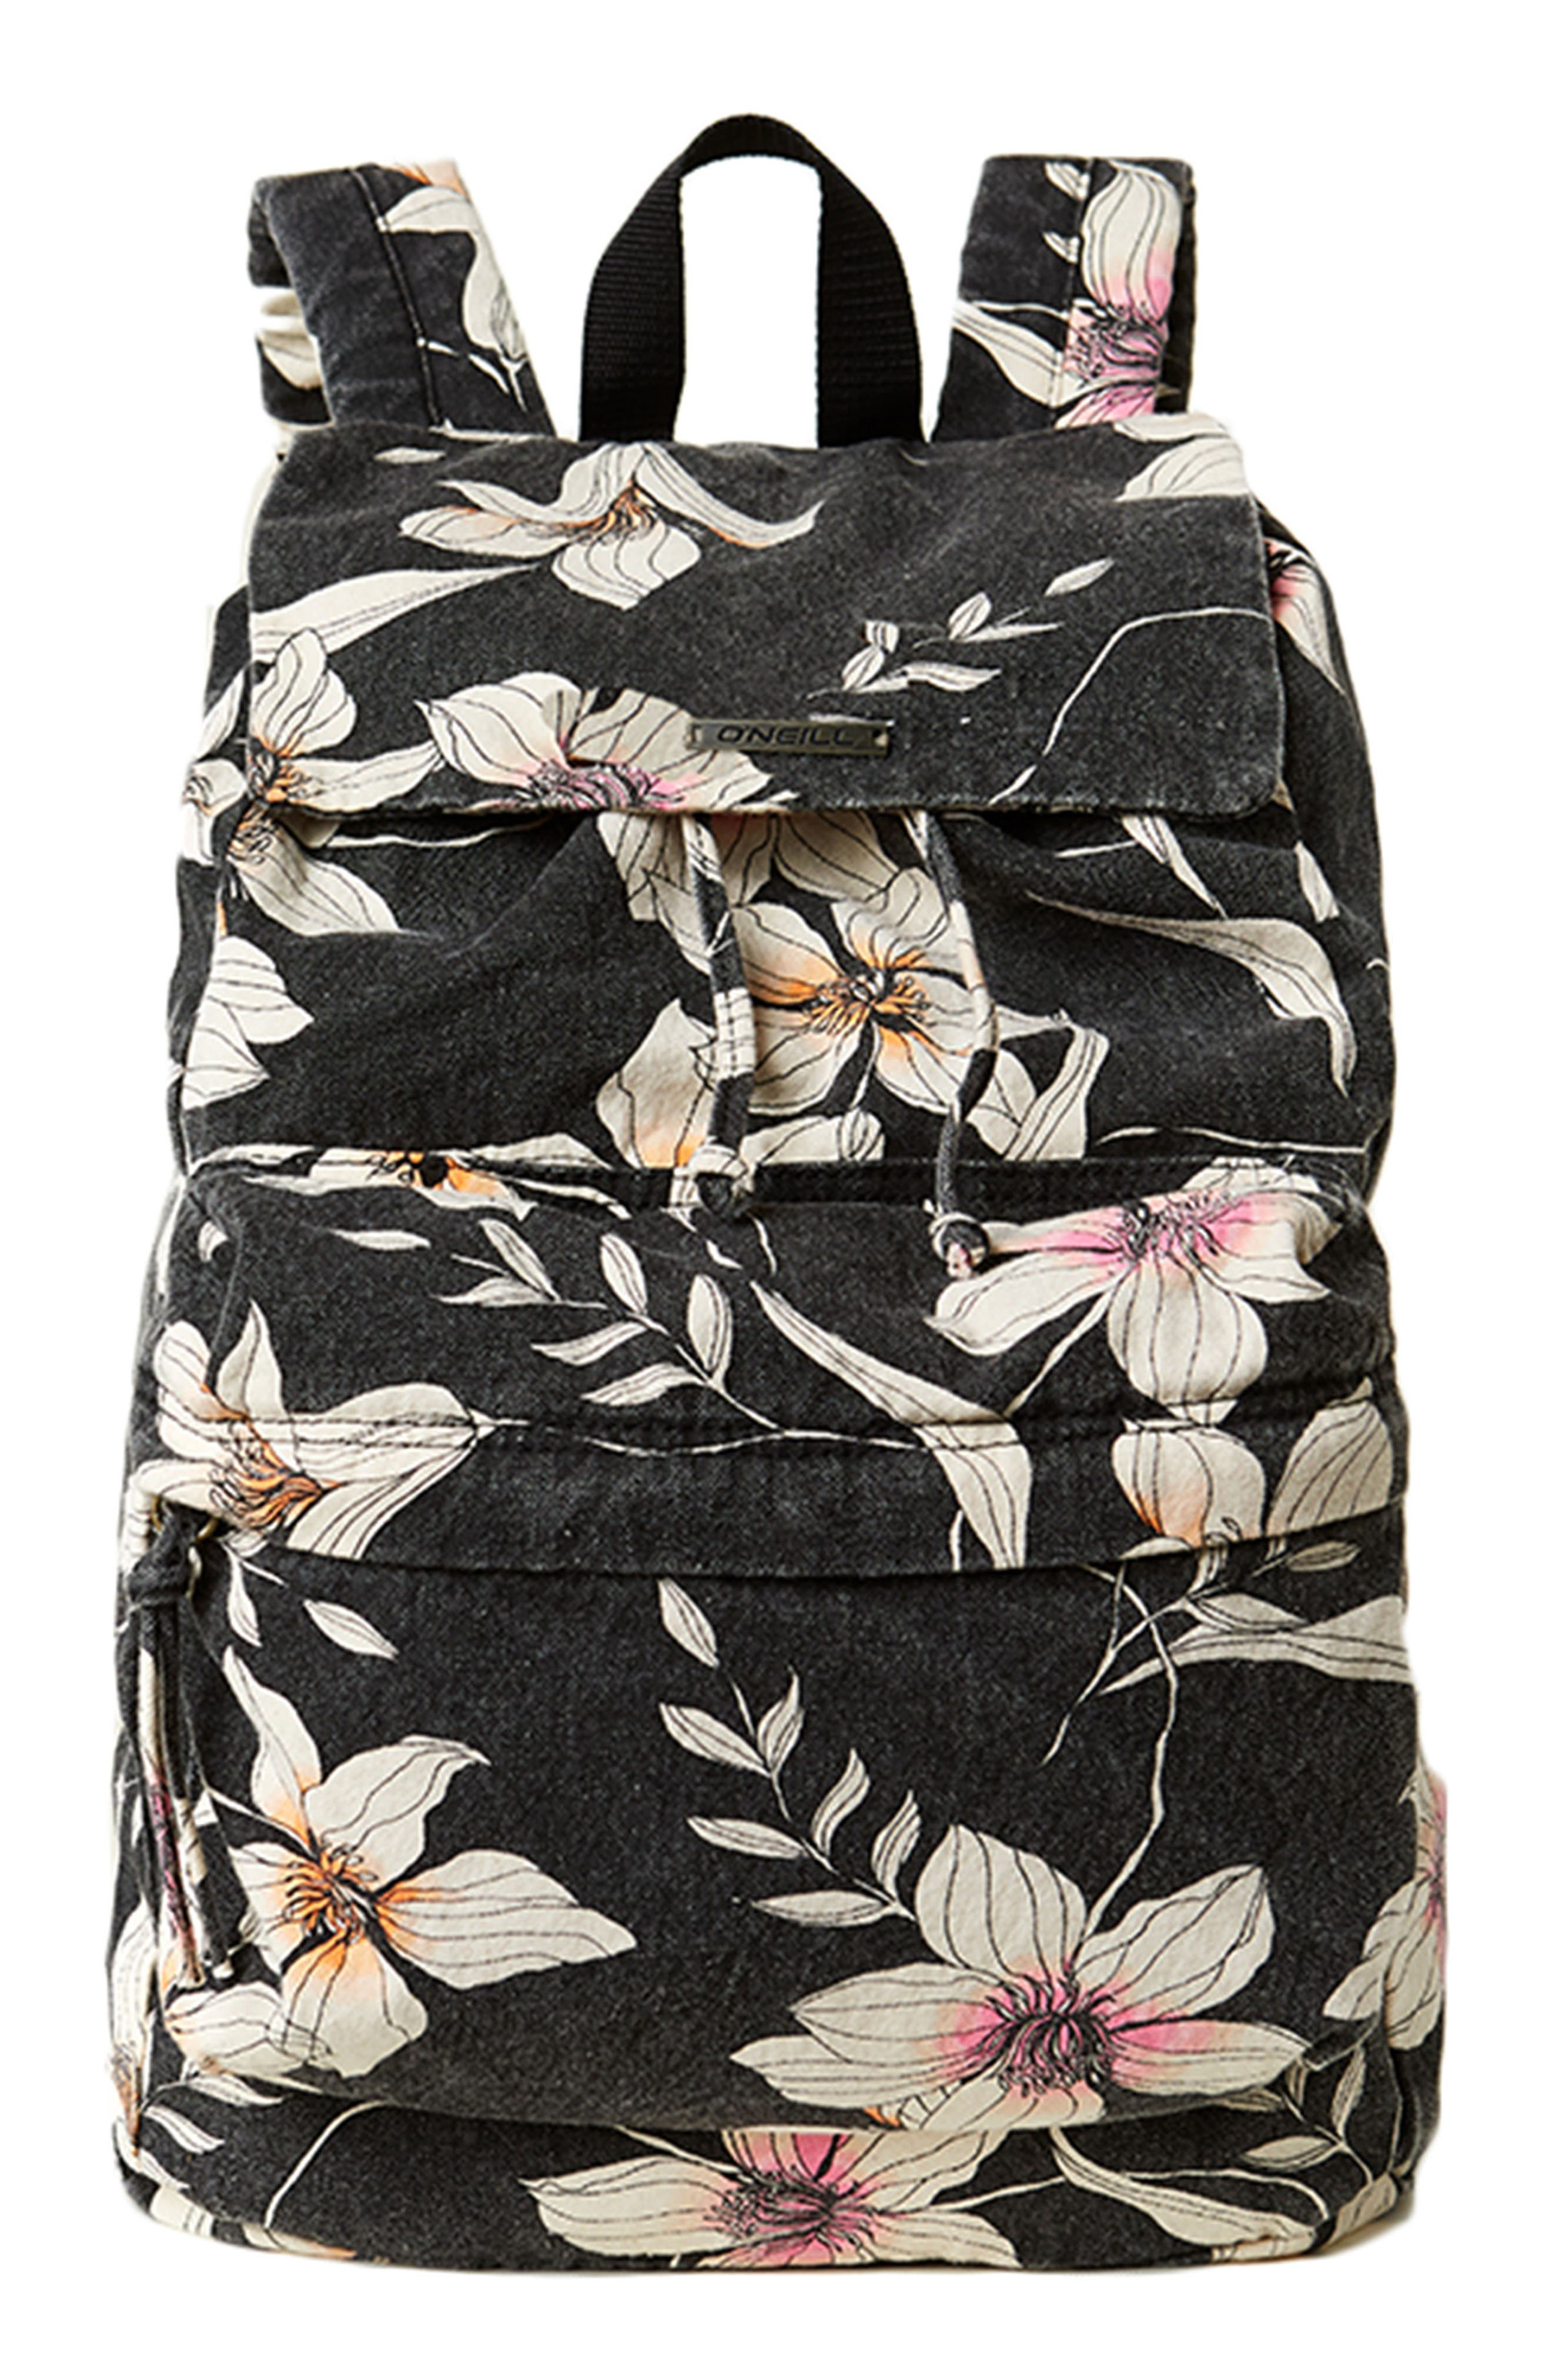 Starboard Floral Print Canvas Backpack,                             Main thumbnail 1, color,